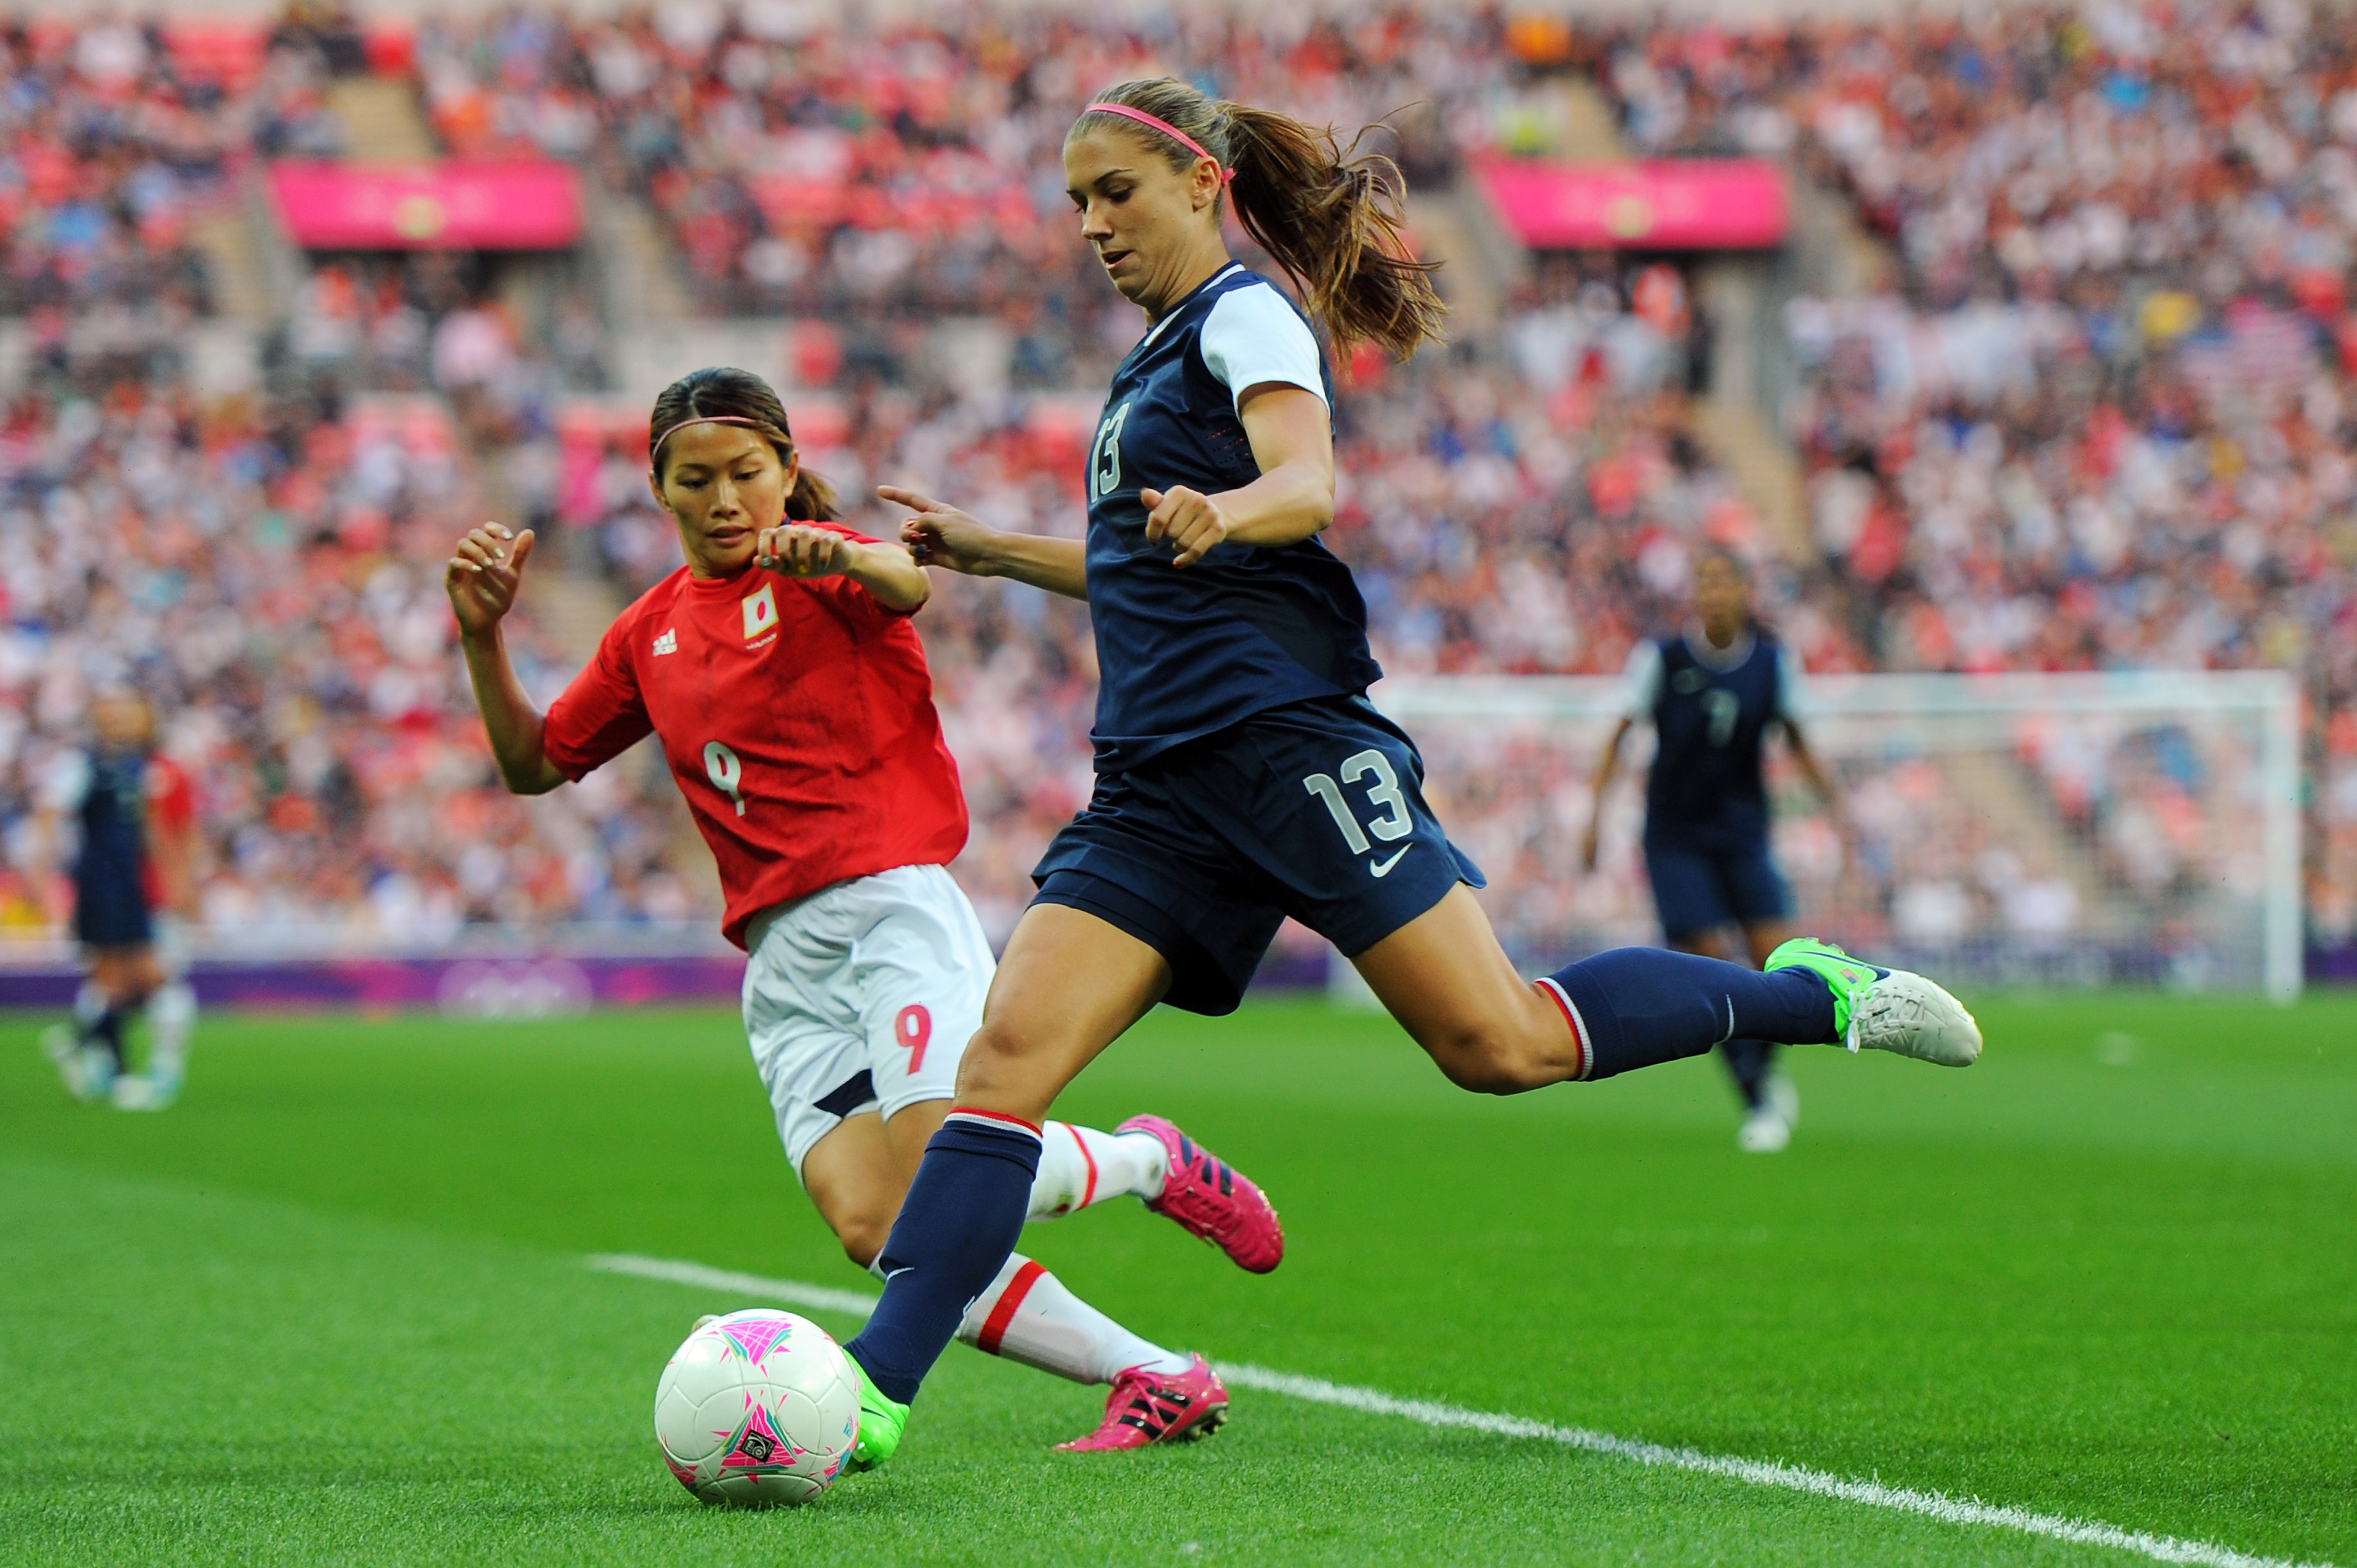 Alex Morgan helped lead the United States to the Gold Medal over Japan at the London 2012 Olympics.